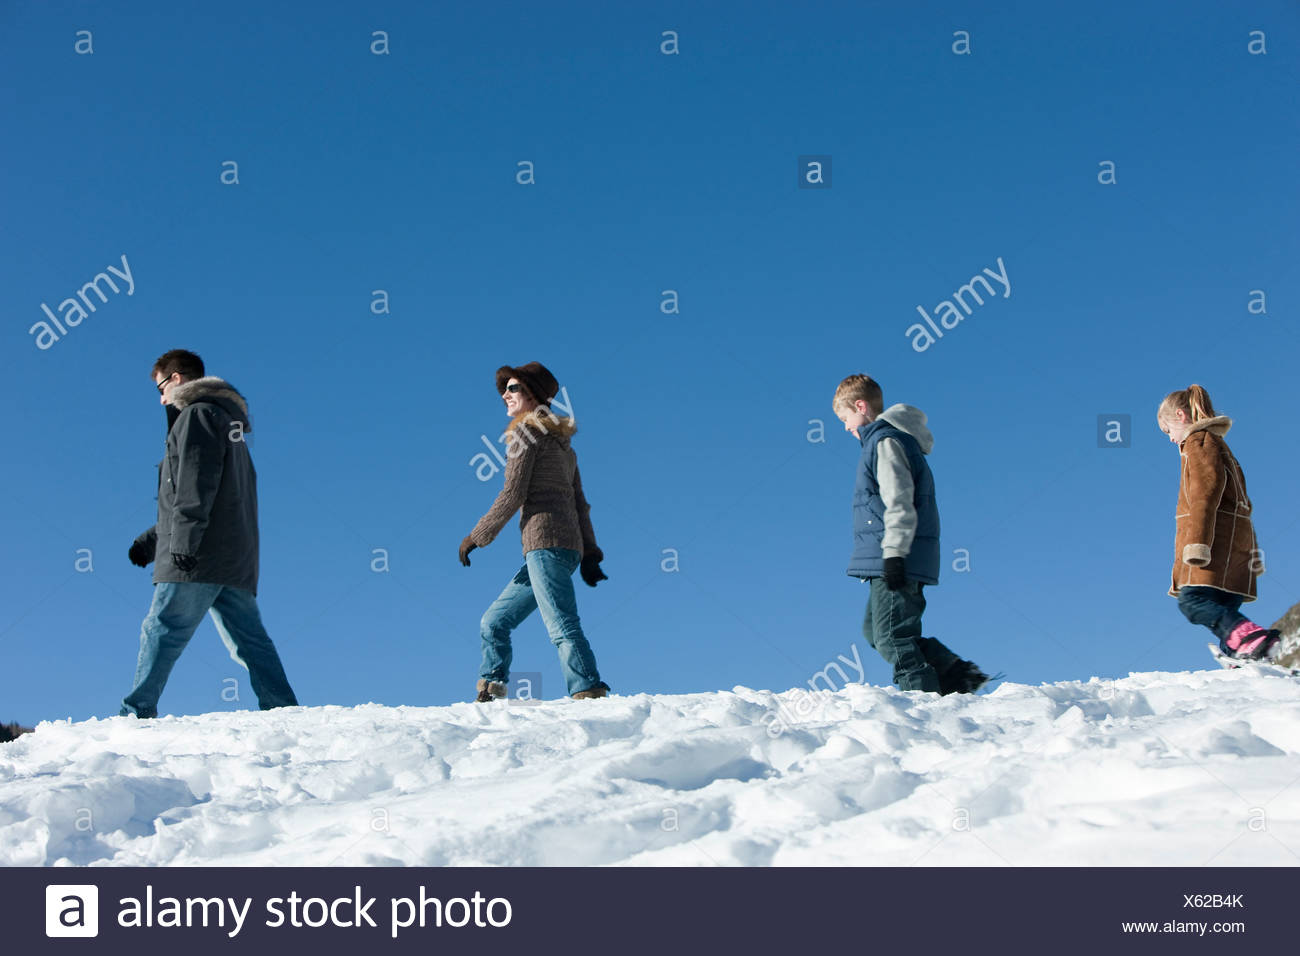 USA, Utah, Big Cottonwood Canyon, family walking in snow - Stock Image